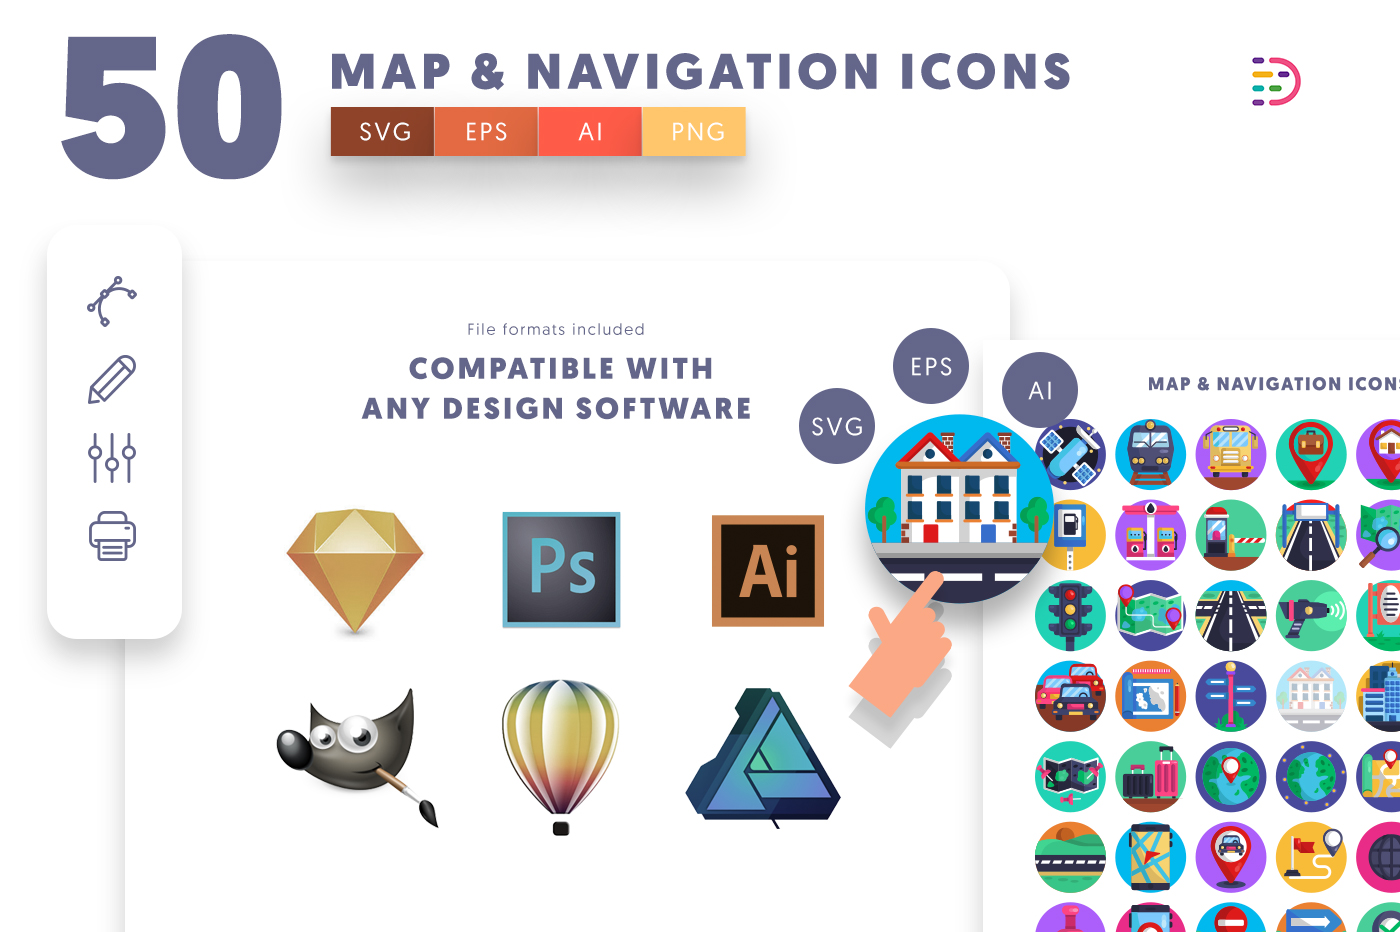 Compatible 50 Map & Navigation Icons pack